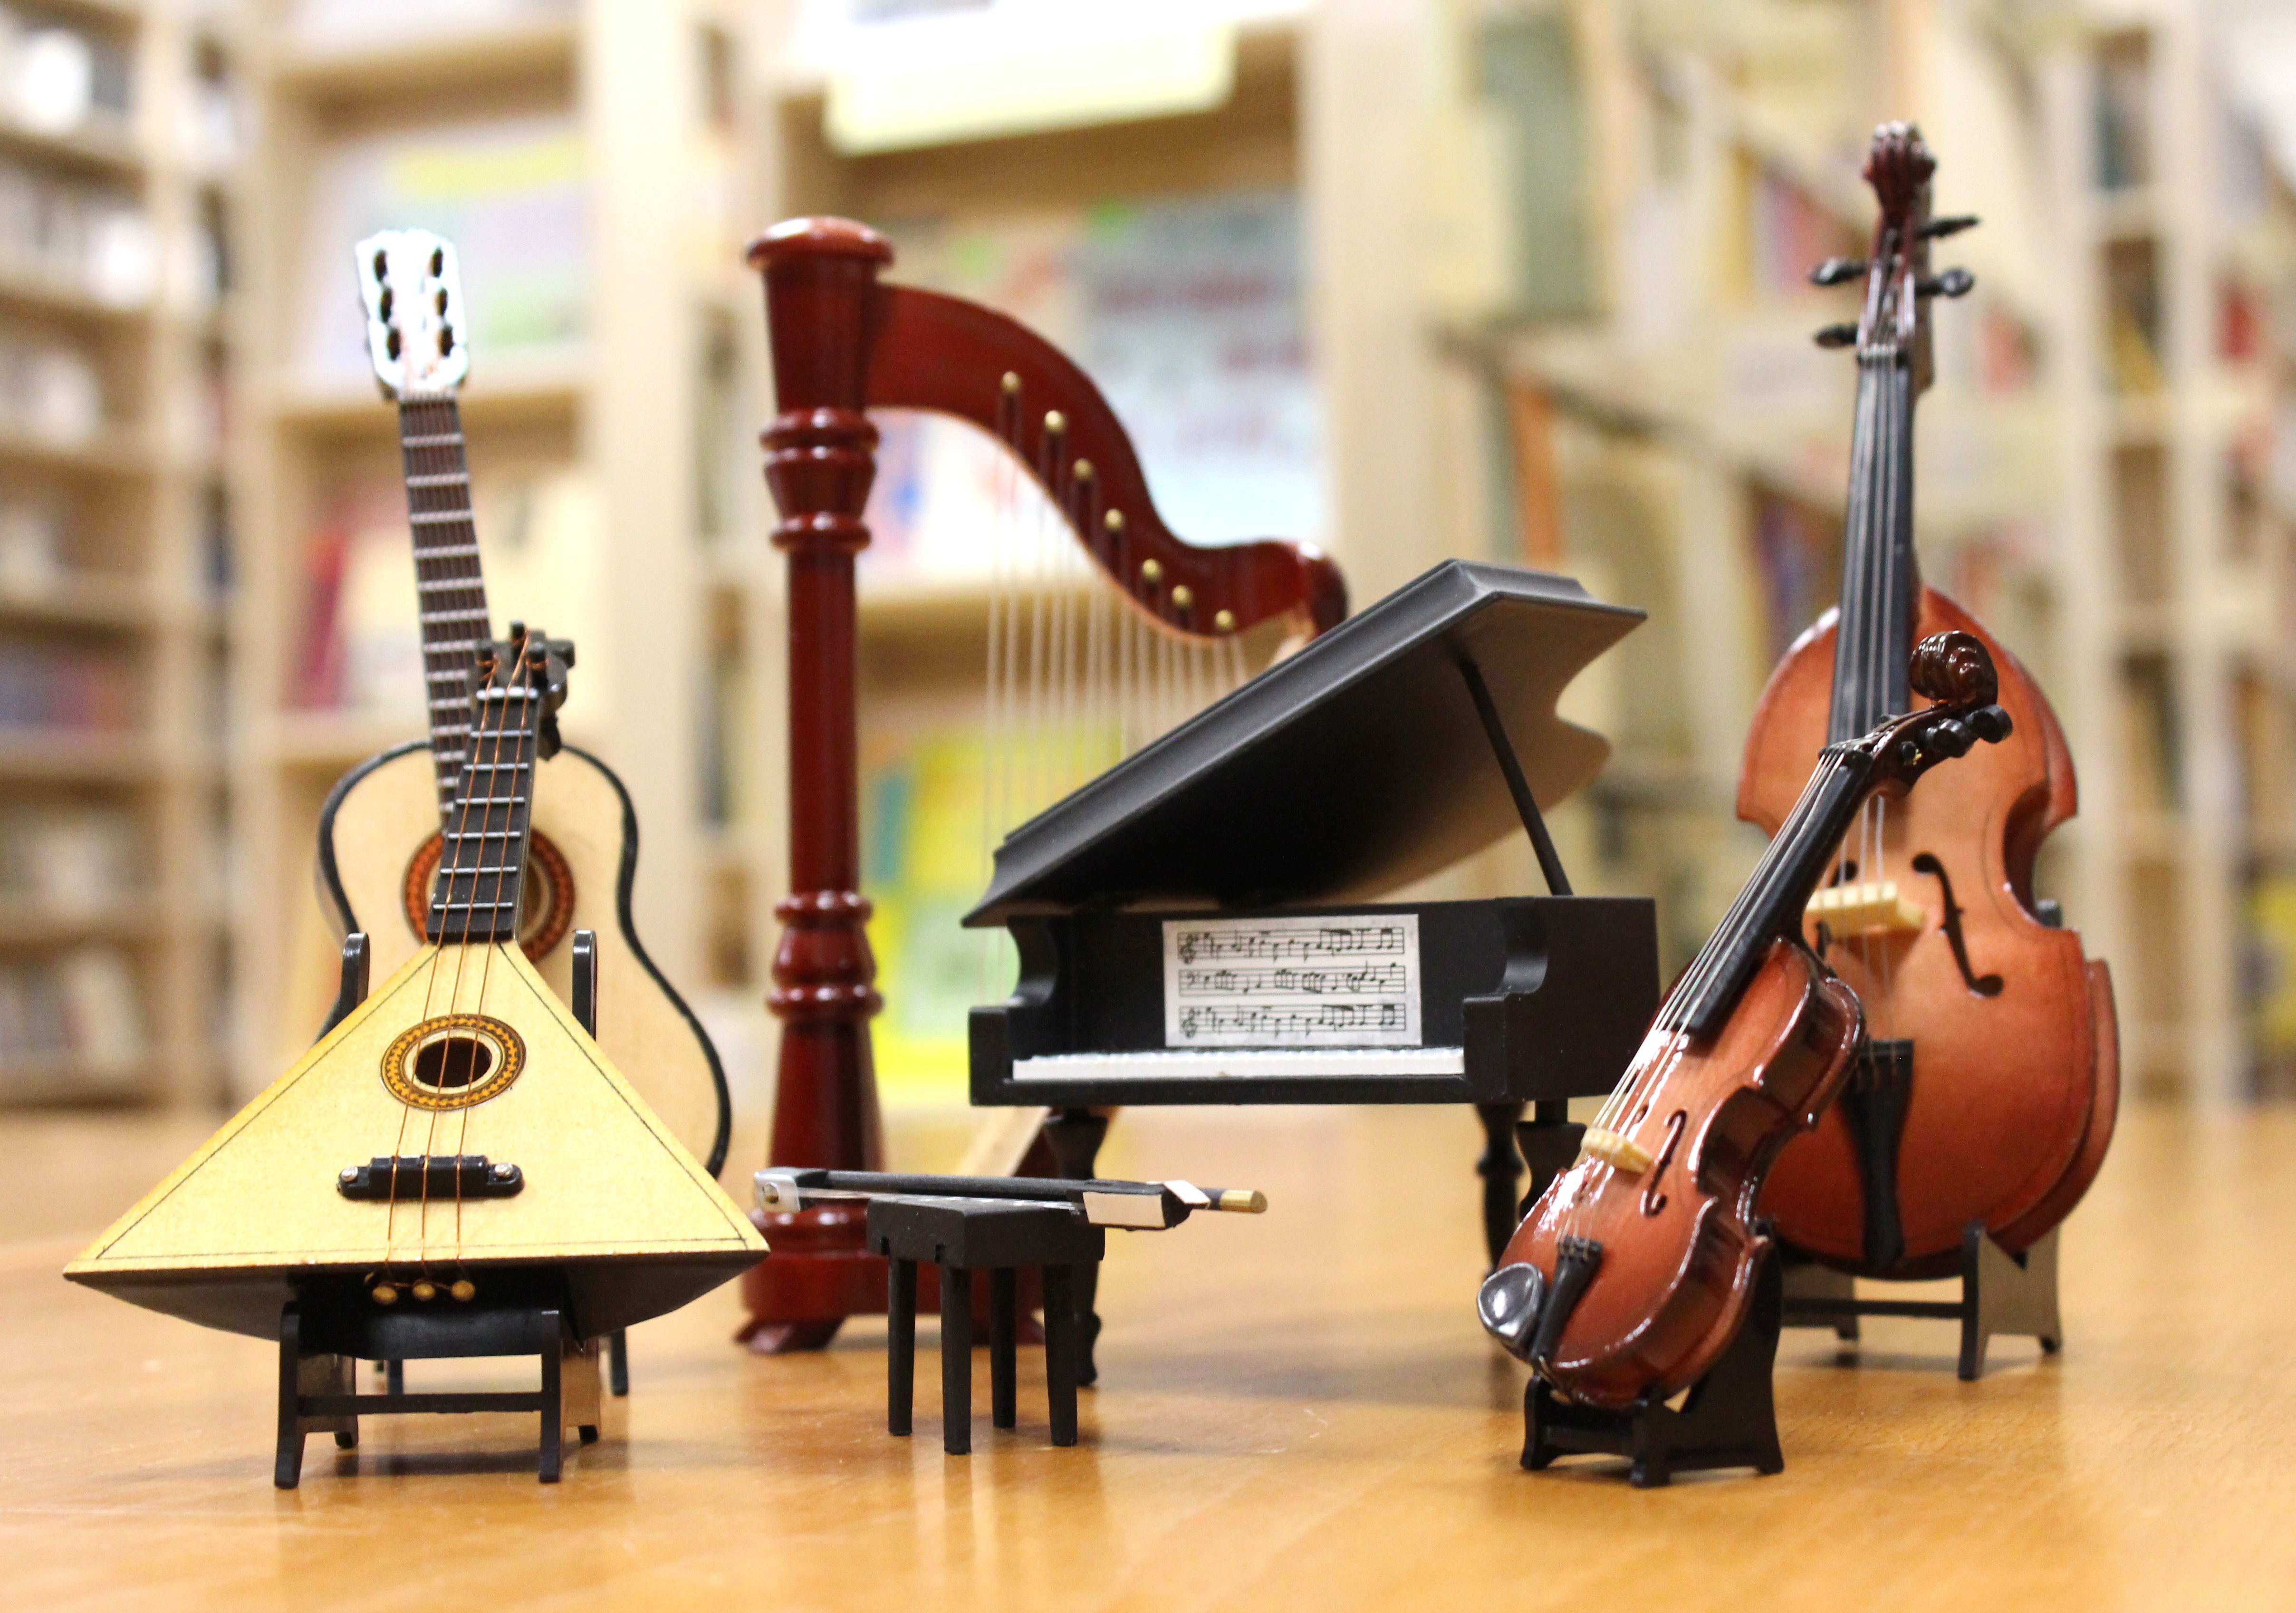 Different instruments with different sound timbre